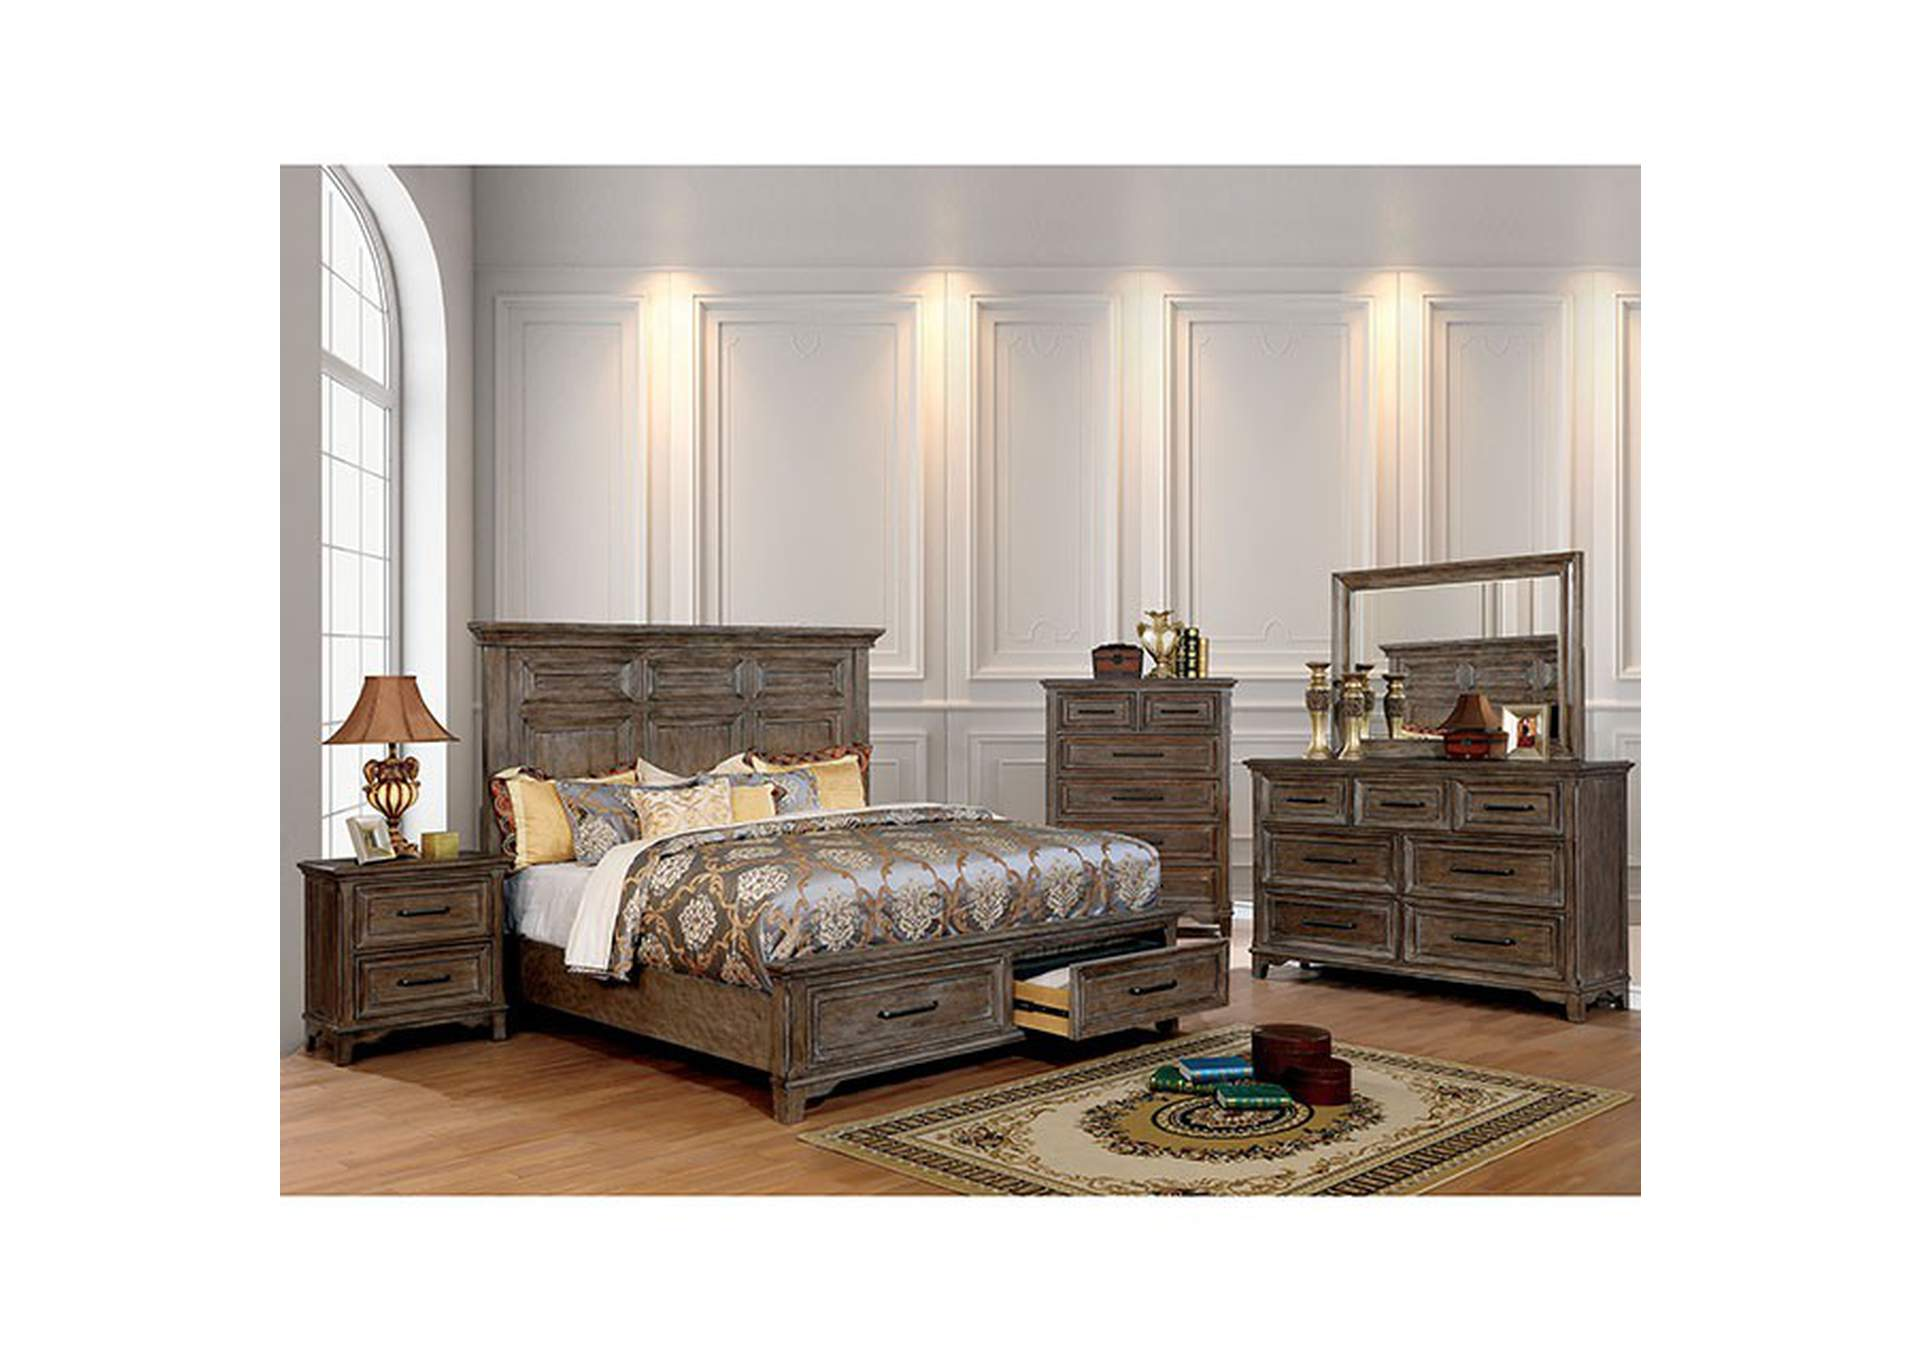 Oberon Rustic Oak Queen Storage Bed,Furniture of America